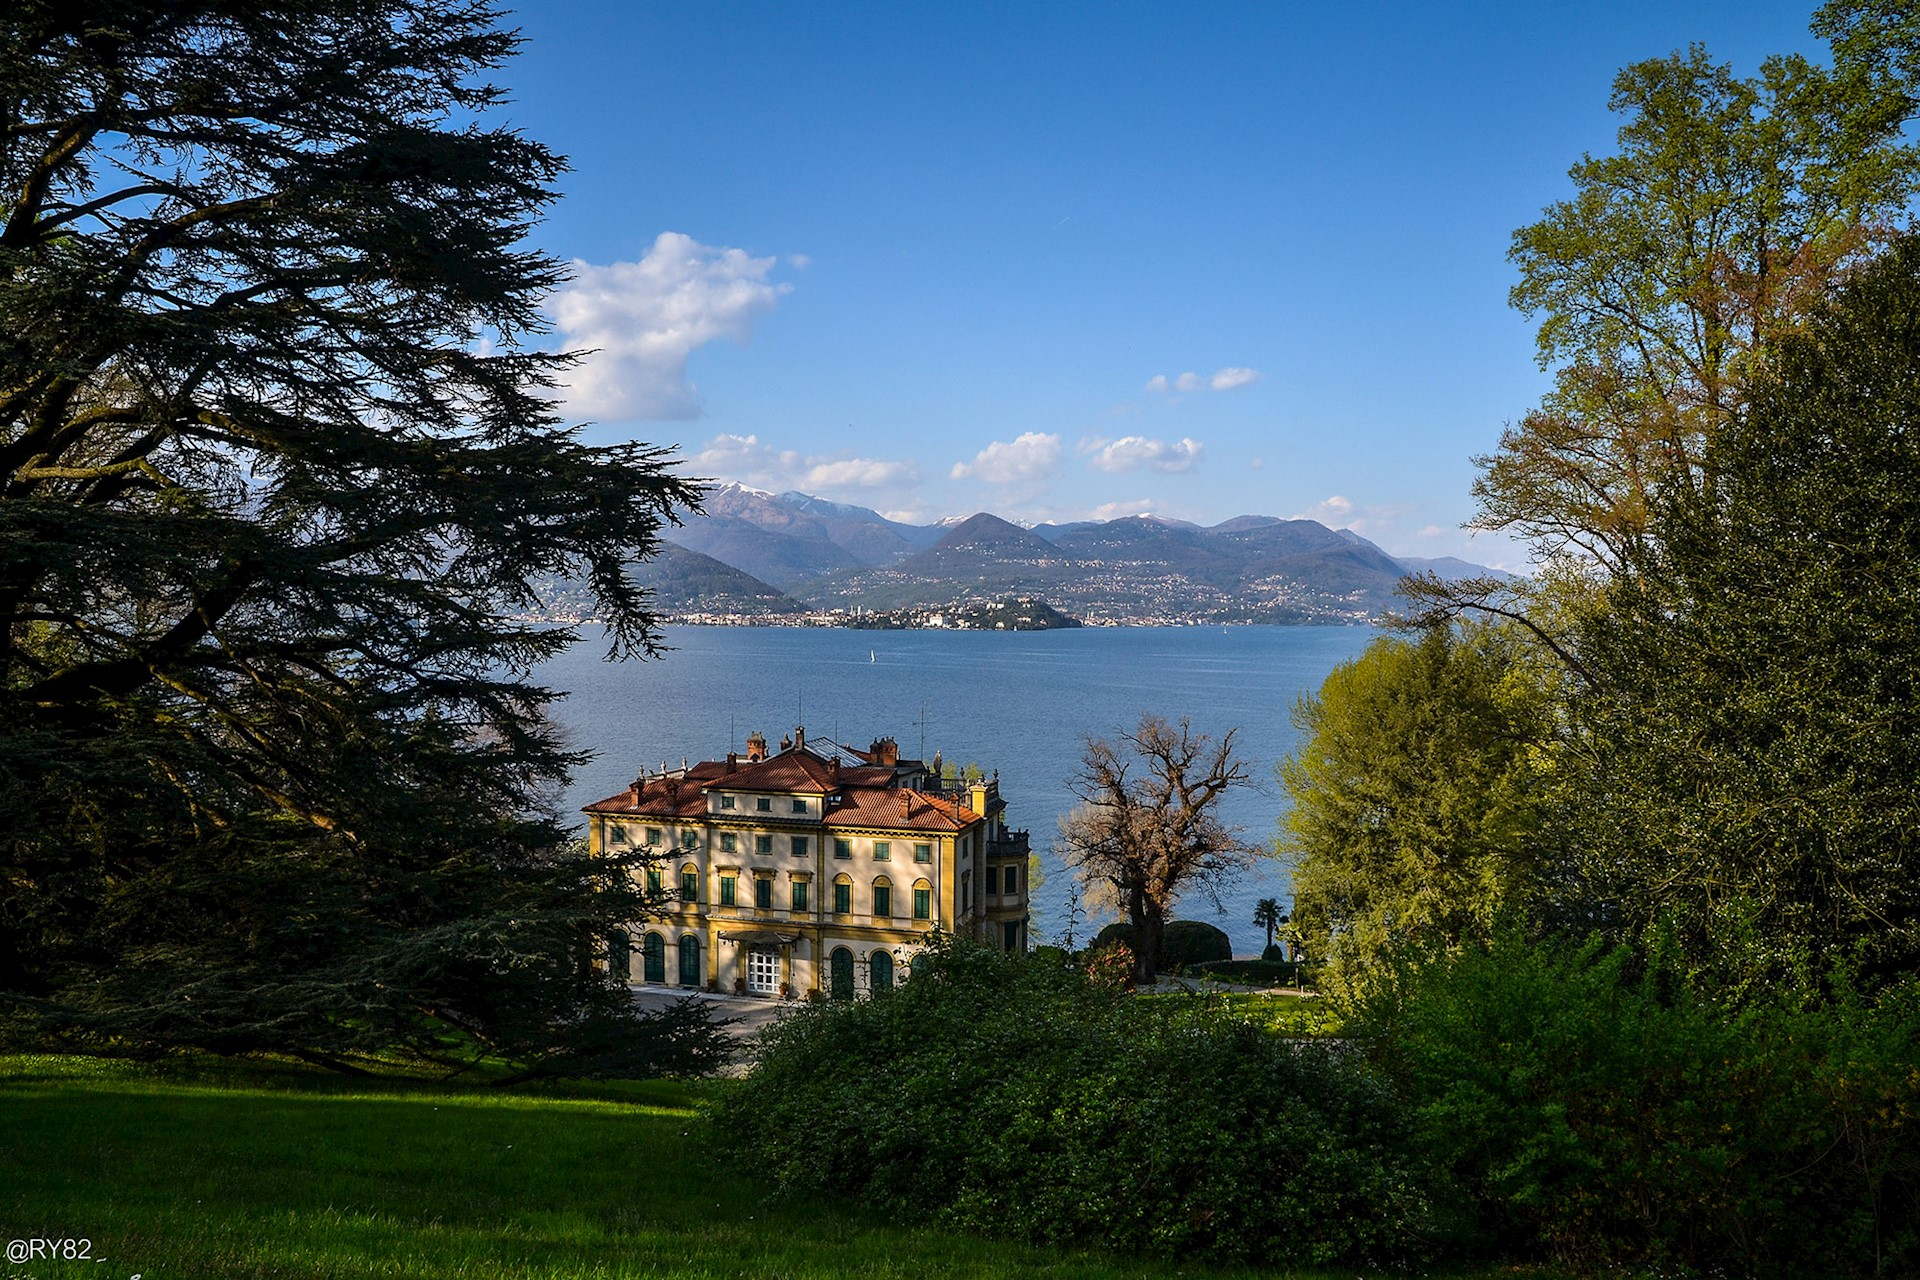 Cruise of the Borromeo Gulf and the eclectic villas of Lake Maggiore